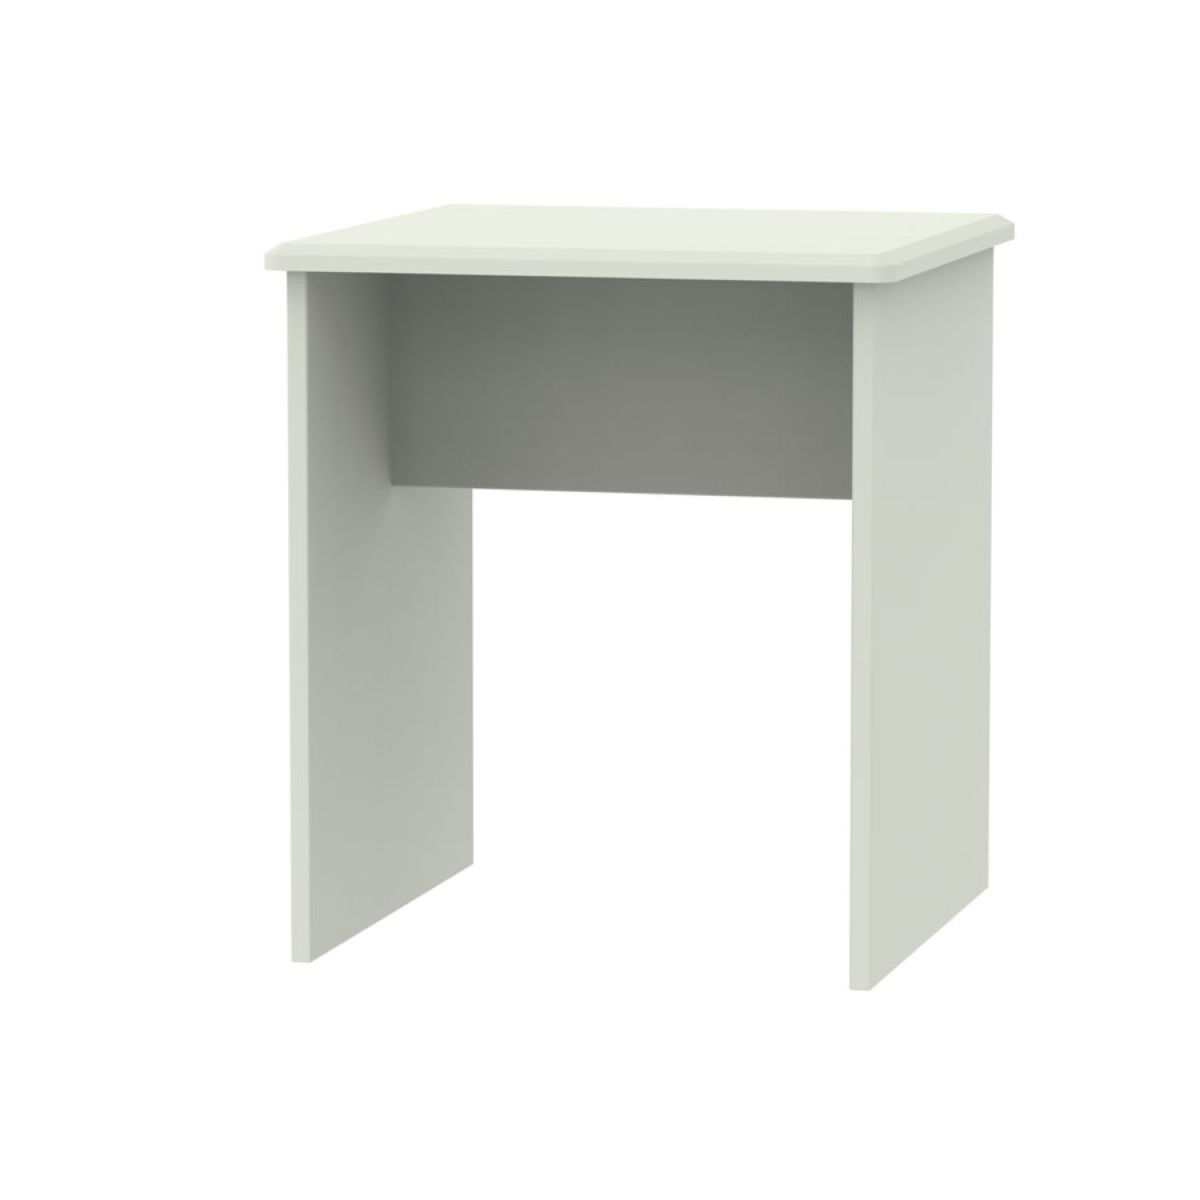 Indices Lamp Table - Beige